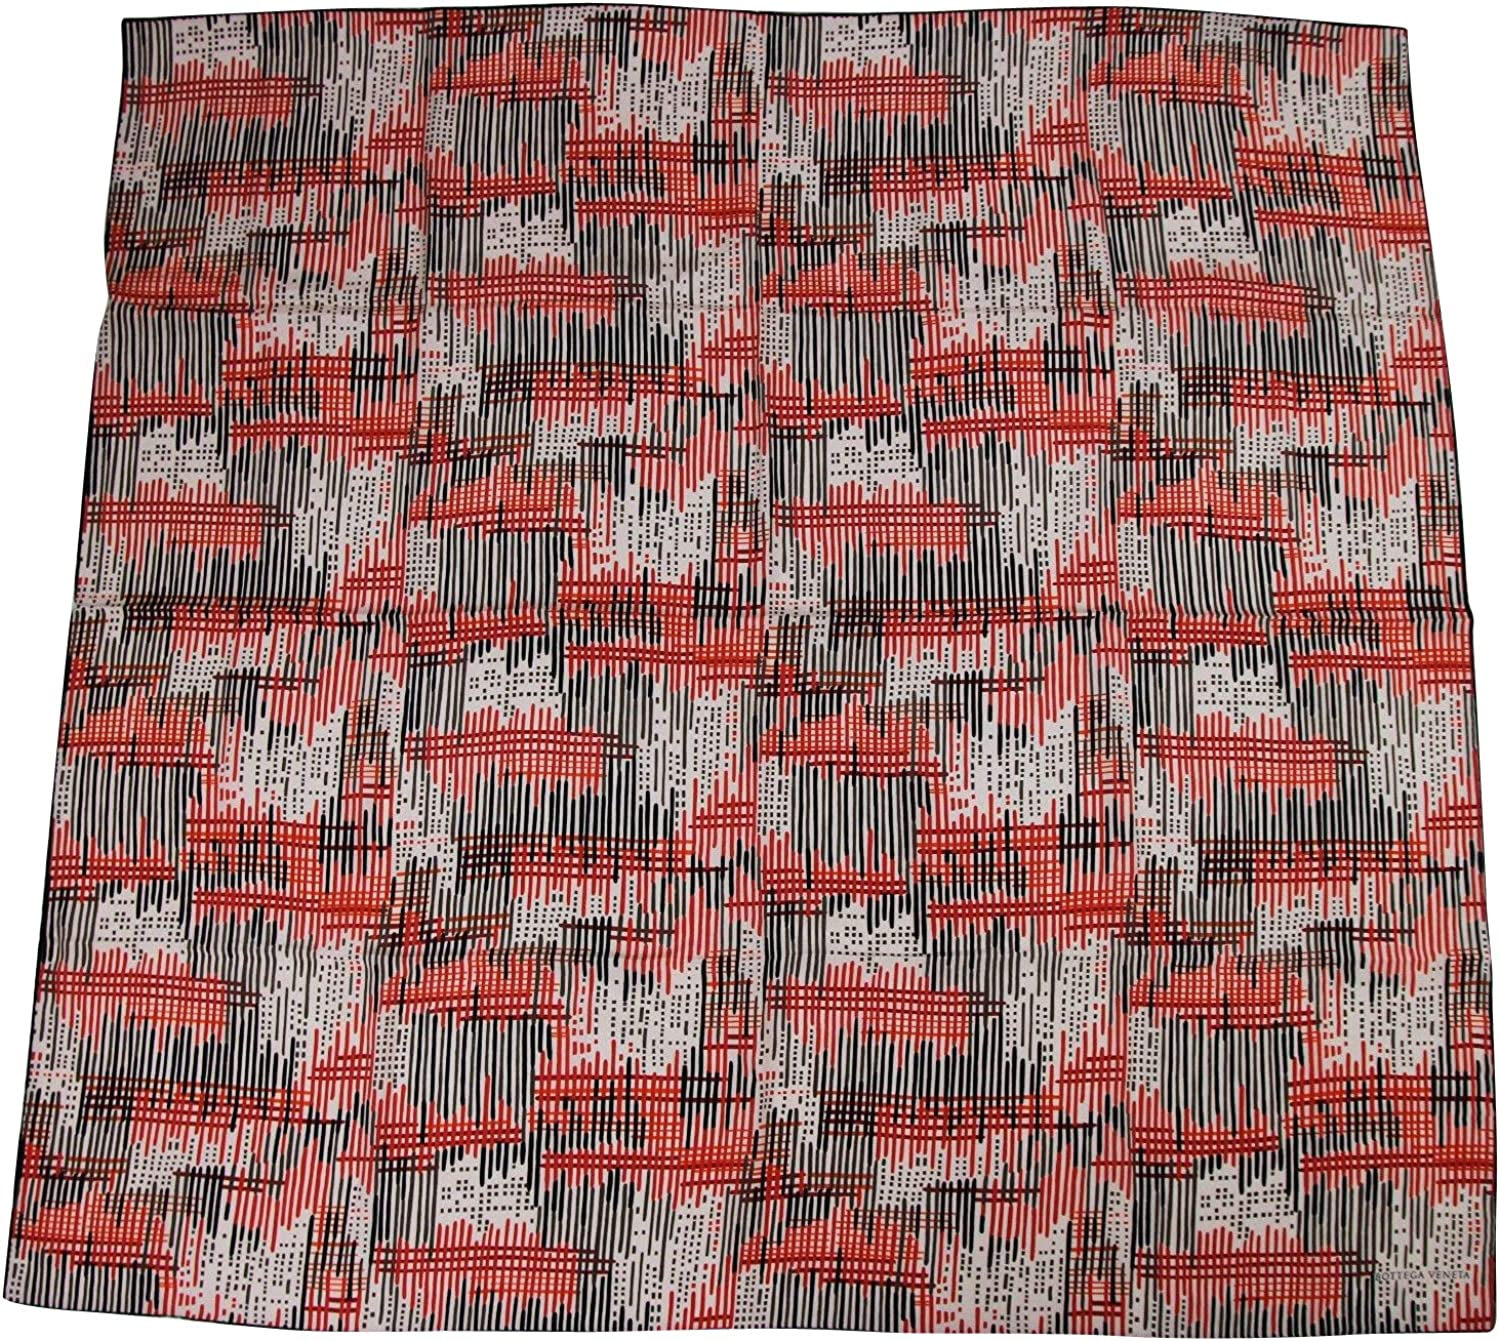 Bottega Veneta Women's Line Patterned Black White Red Silk Large Scarf 339043 6974